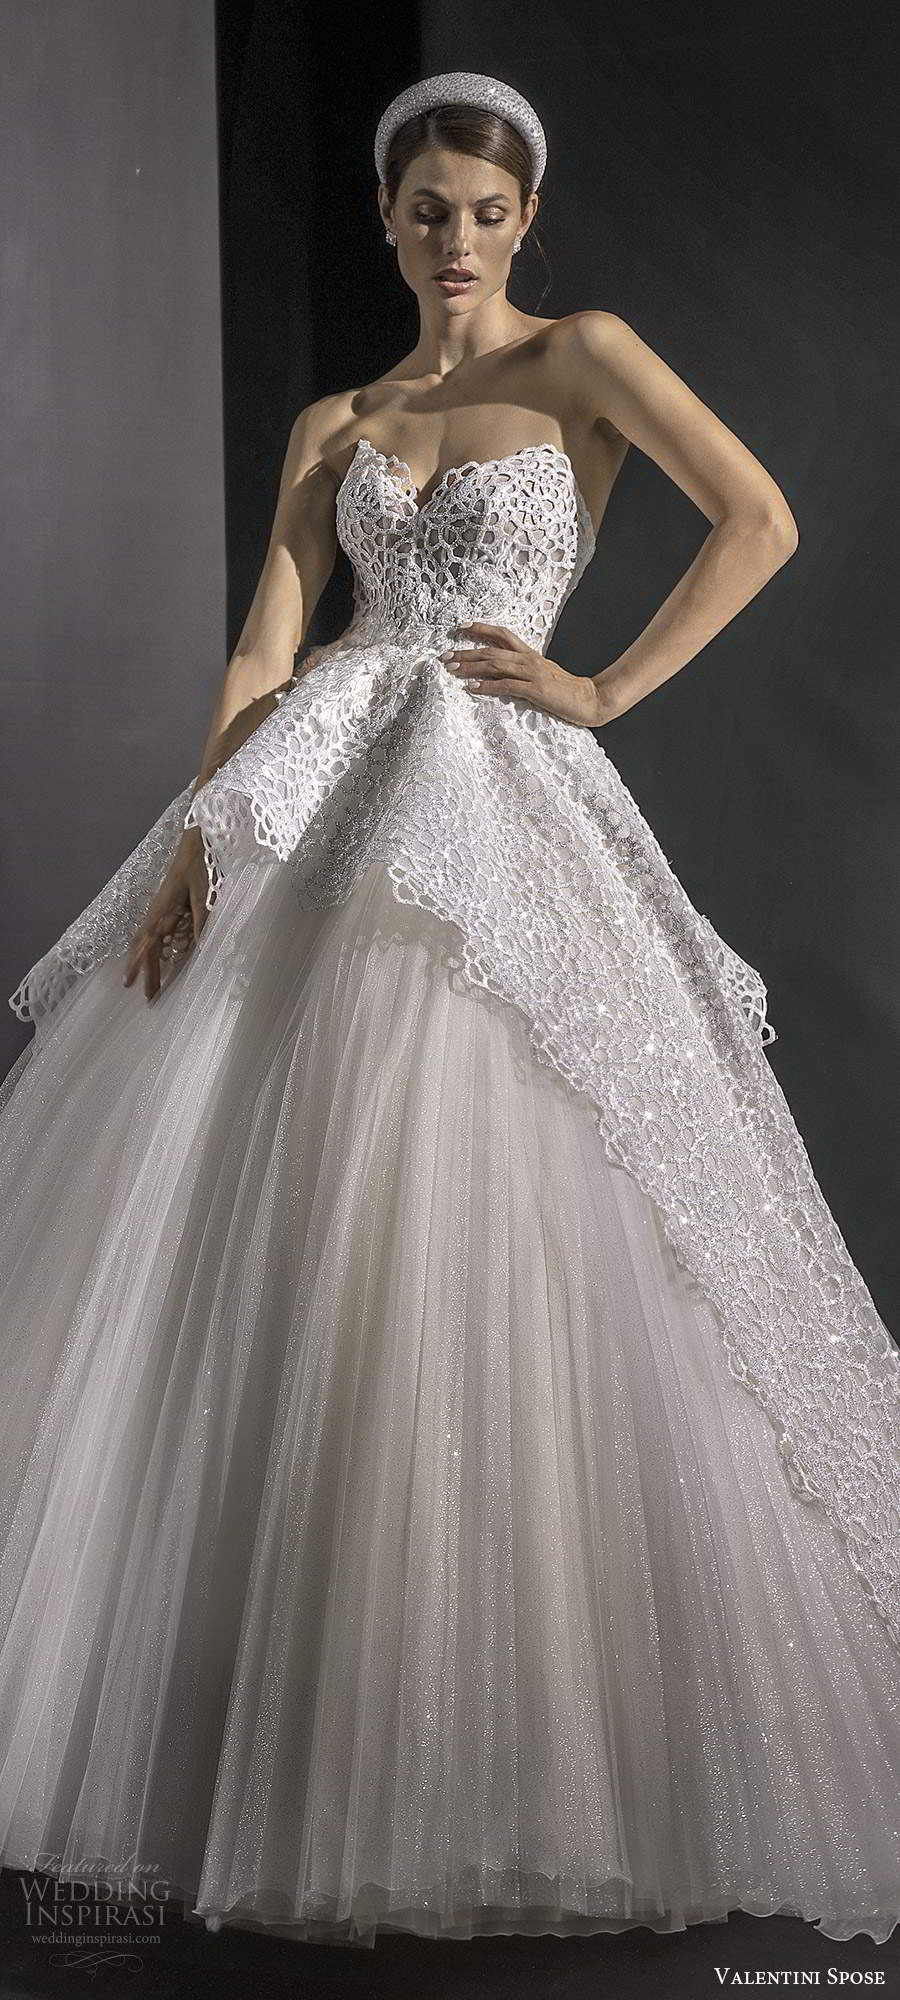 valentini spose fall 2020 bridal strapless sweetheart embellished bodice a line ball gown wedding dress overskirt chapel train (4) mv